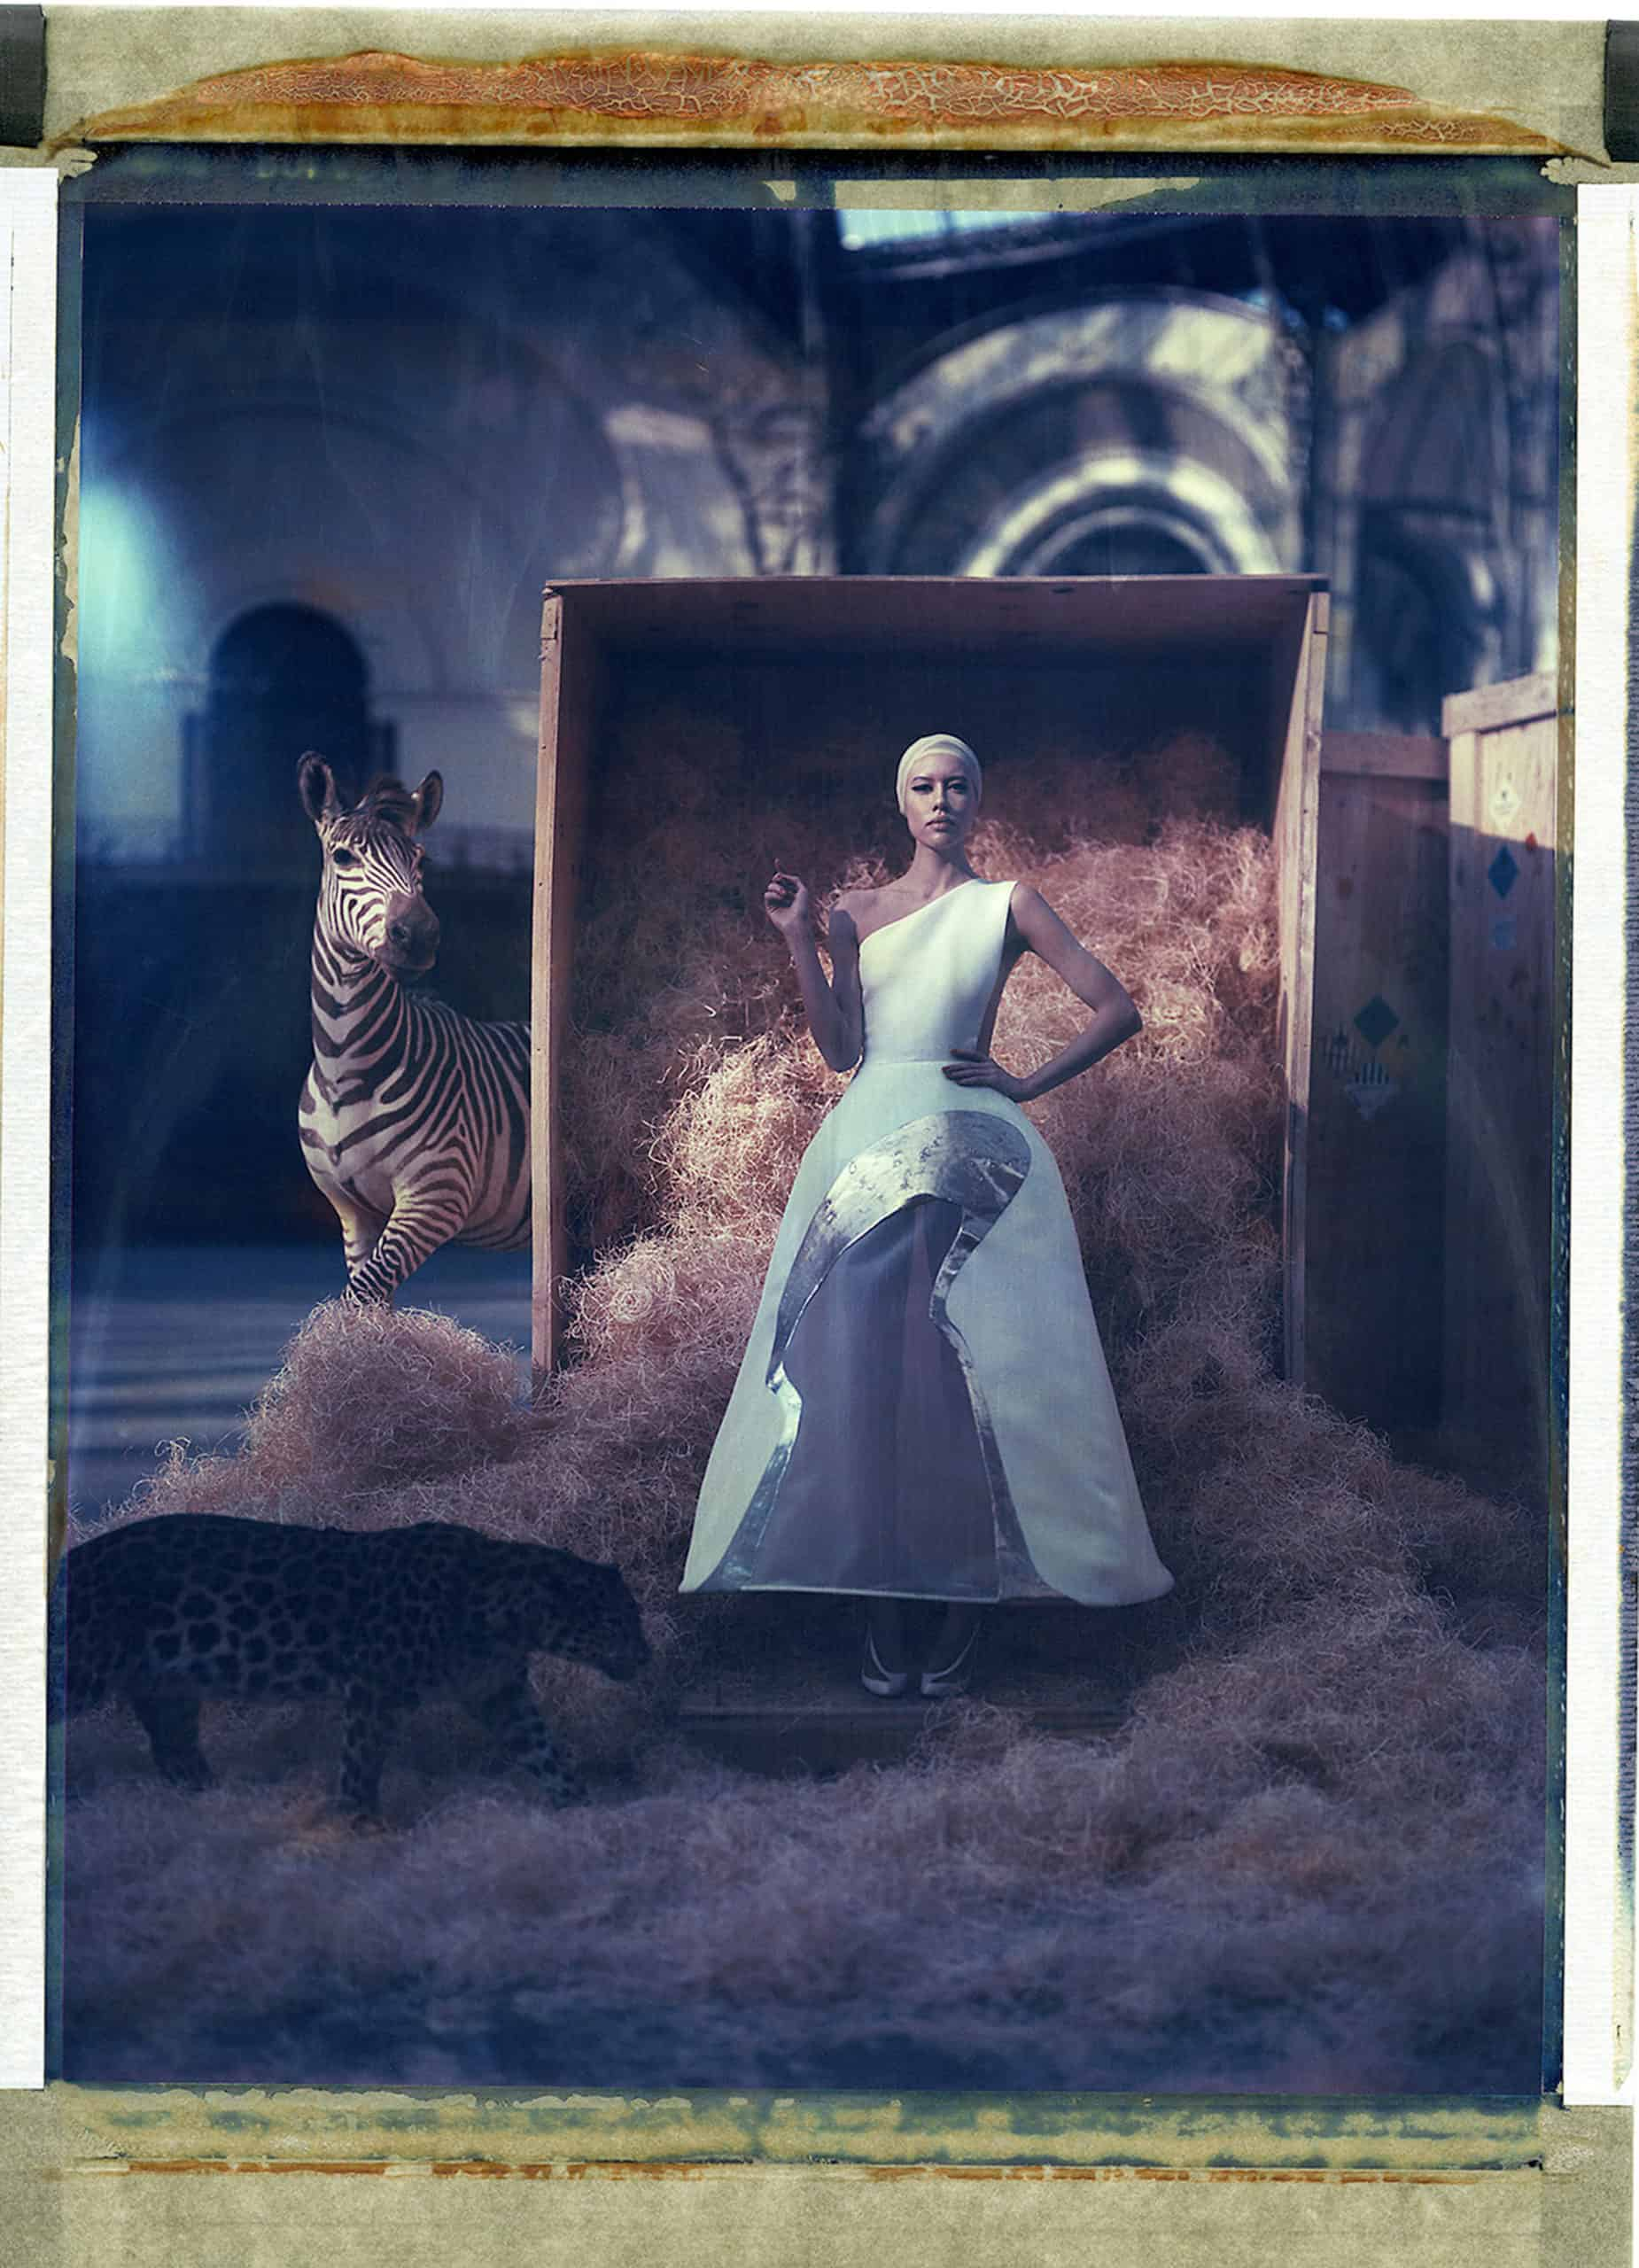 Fine art color photography of a fashion model wearing haute couture by Stephane Rolland with stuffed zebra and leopard, at the Grand Palais, Paris.